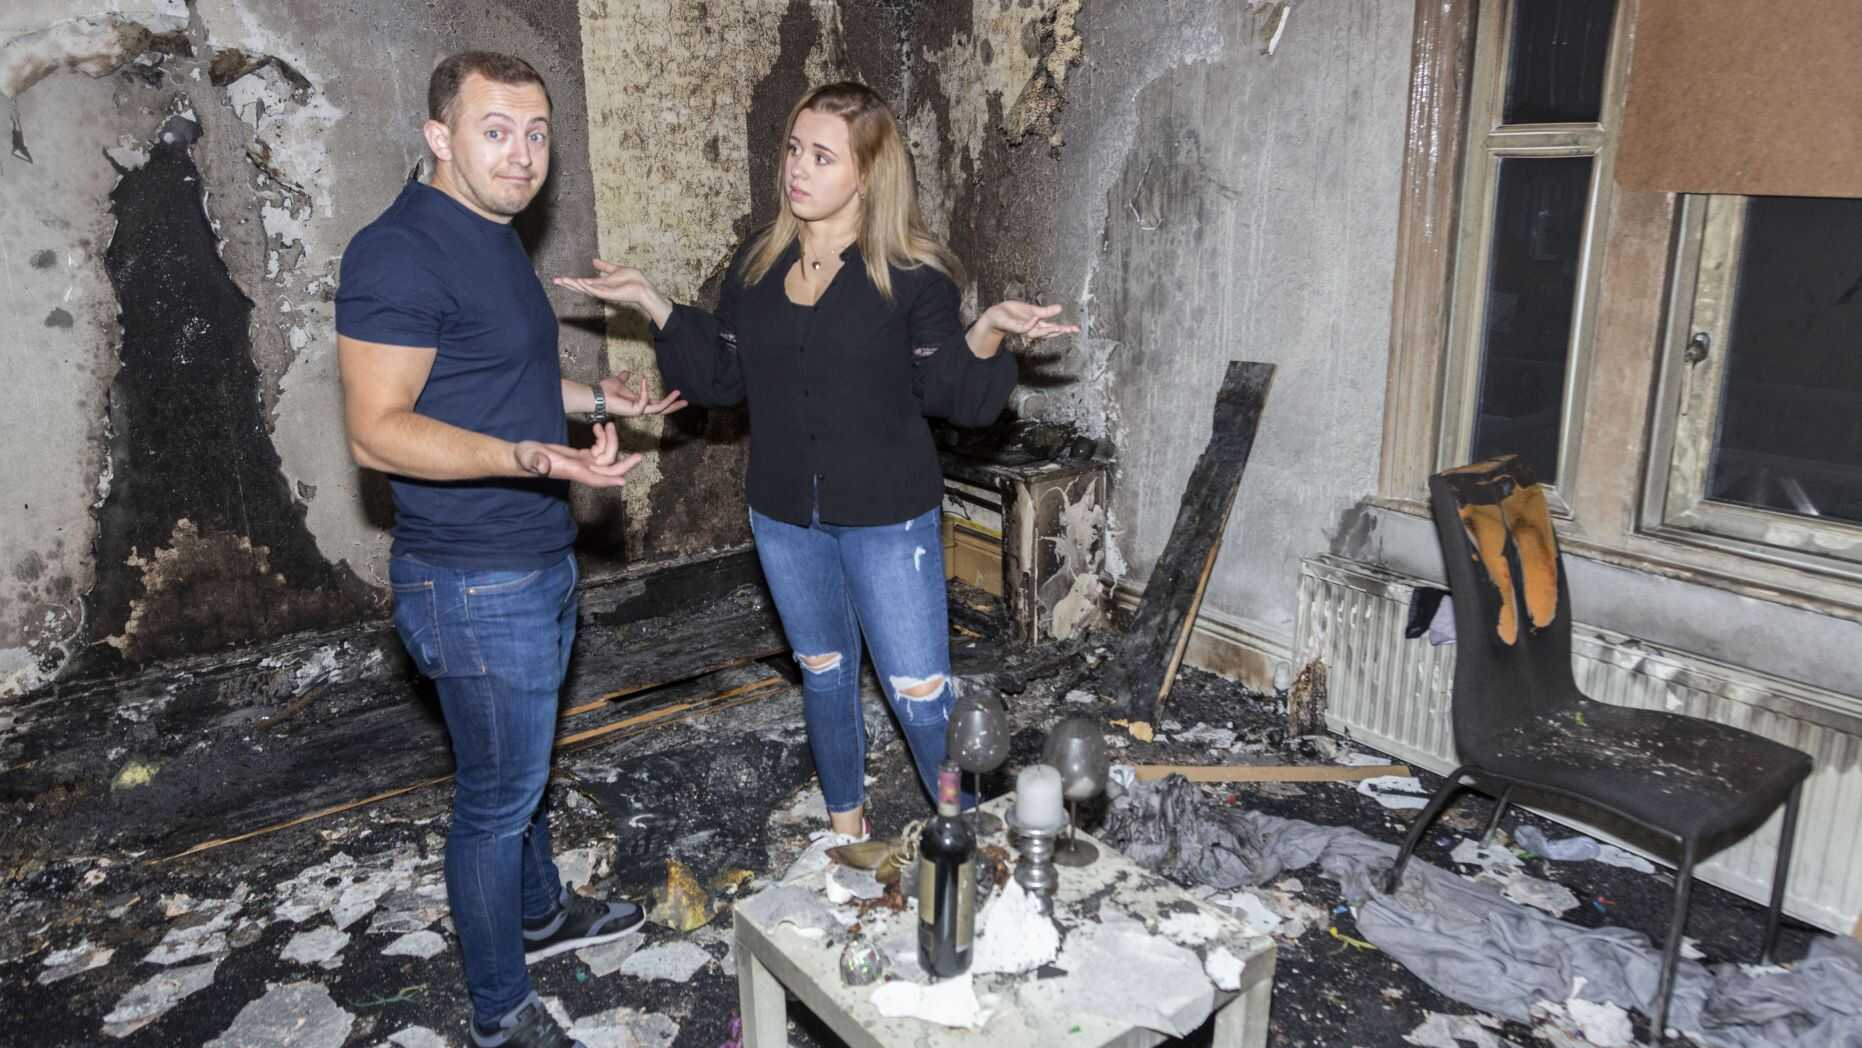 Man Accidentally Burns Down His Apartment As His Romantic Proposal Goes Horribly Wrong 2